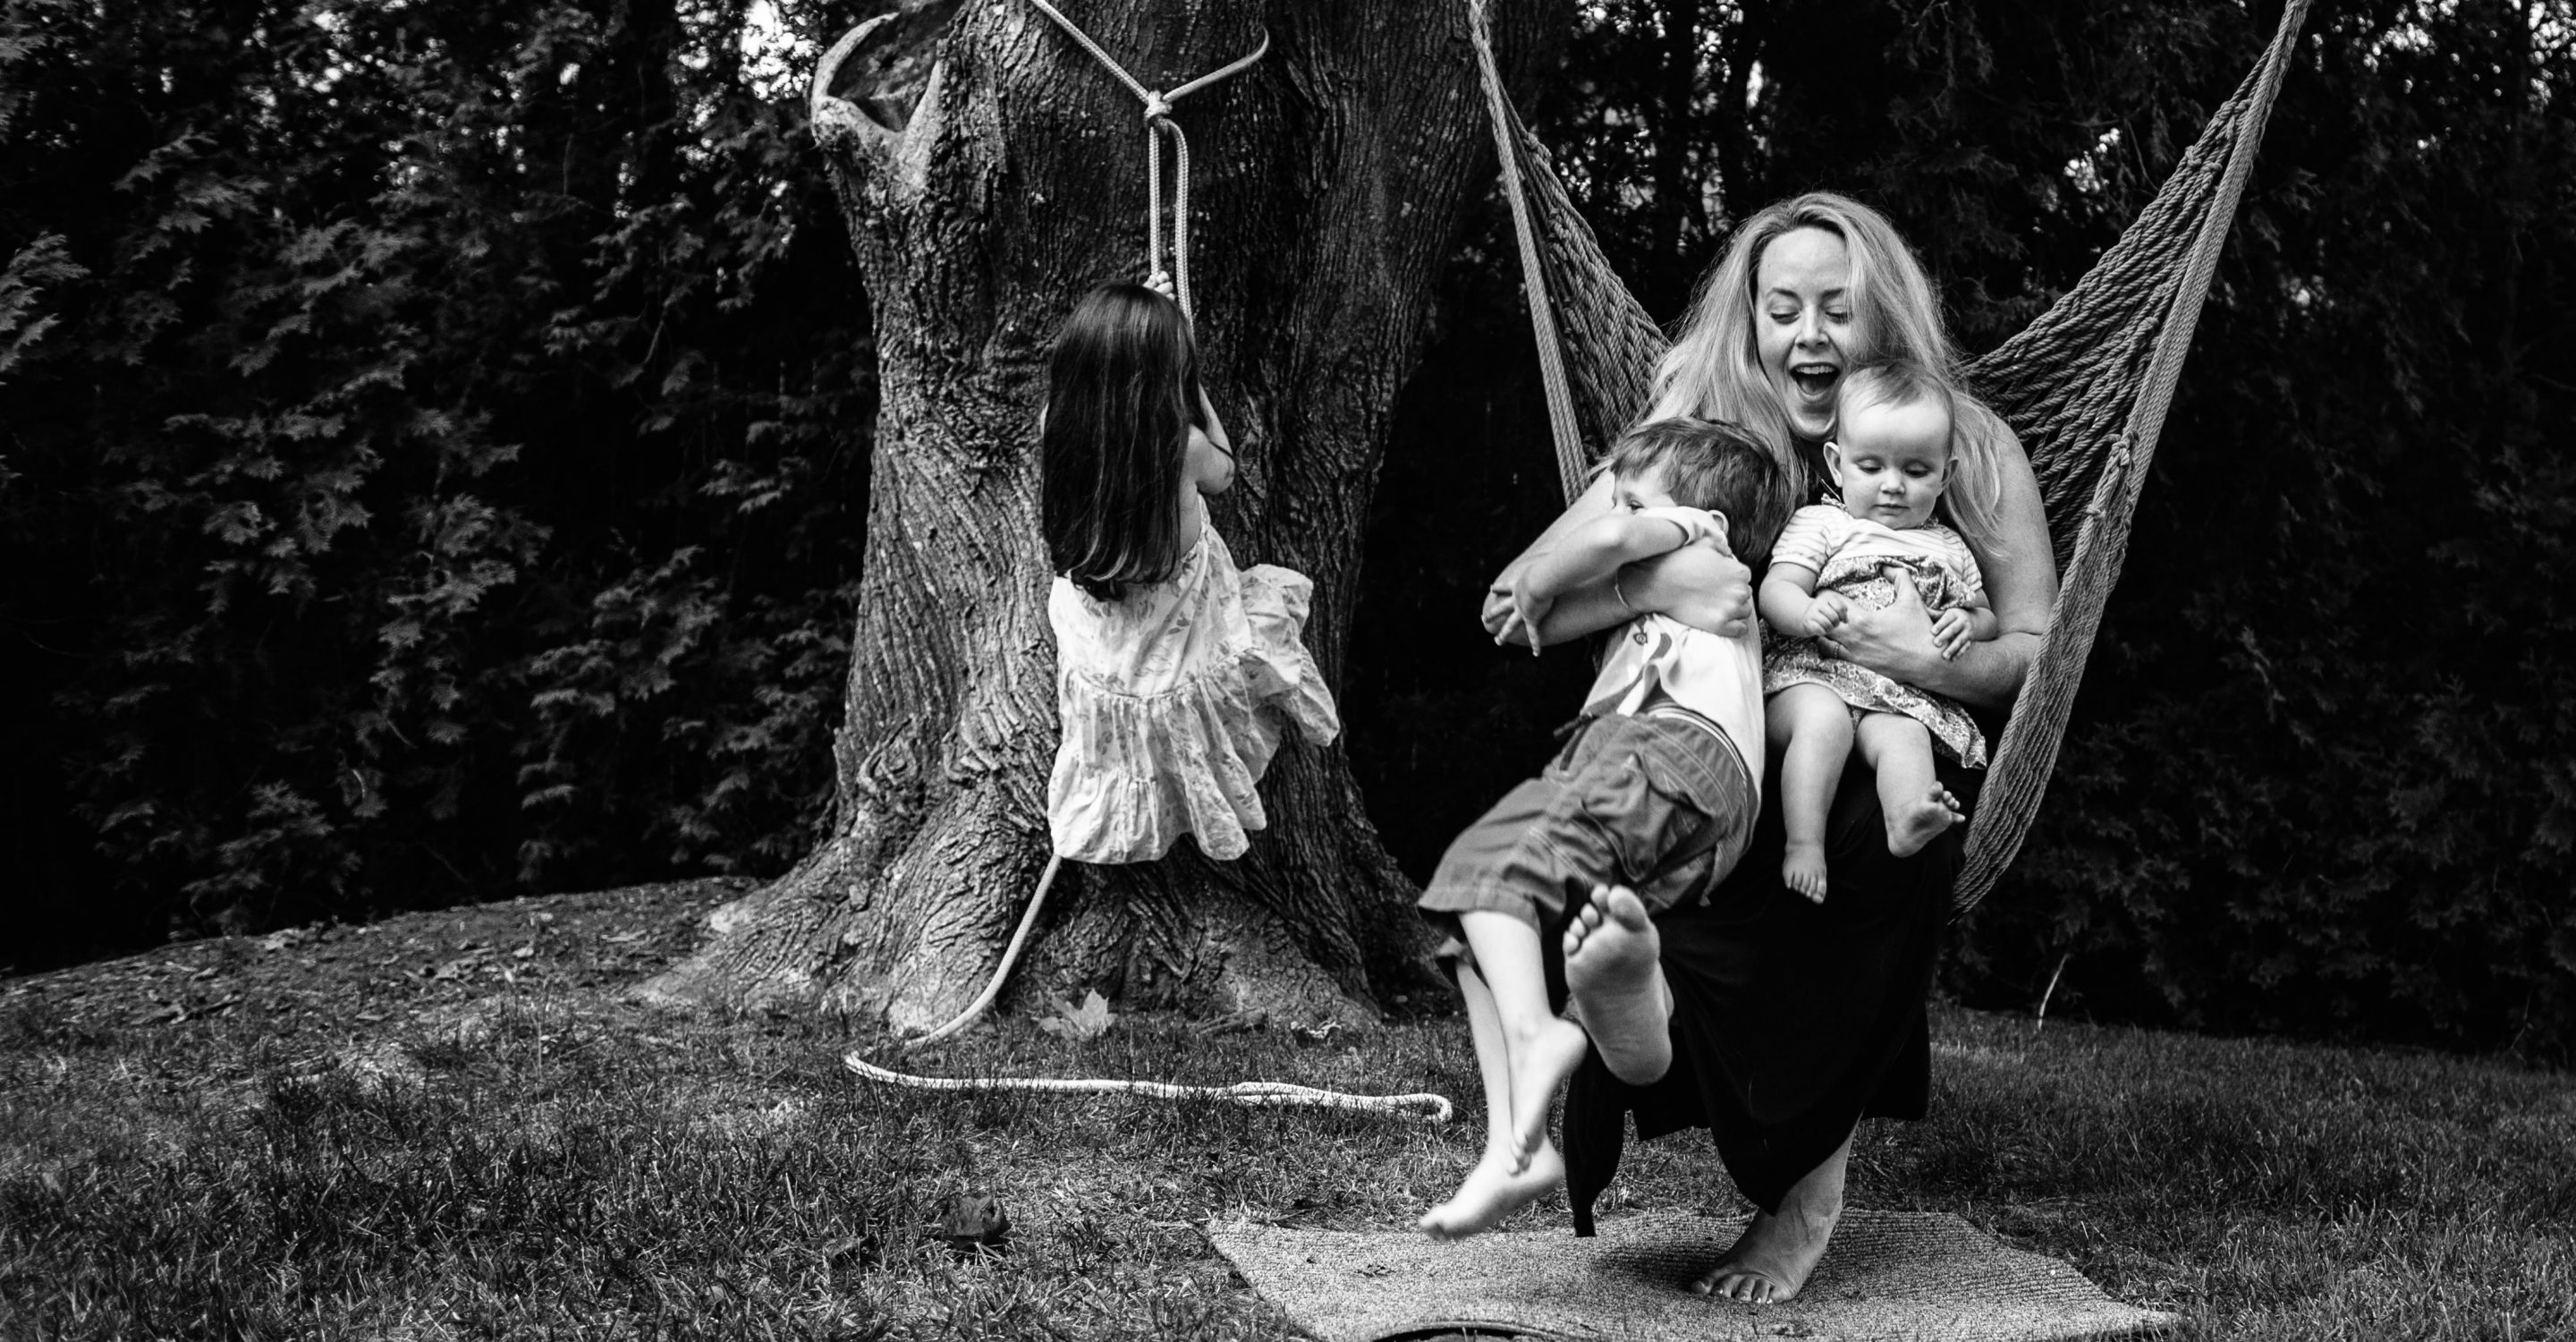 mom on rope swing with two little kids and girl climbing up tree